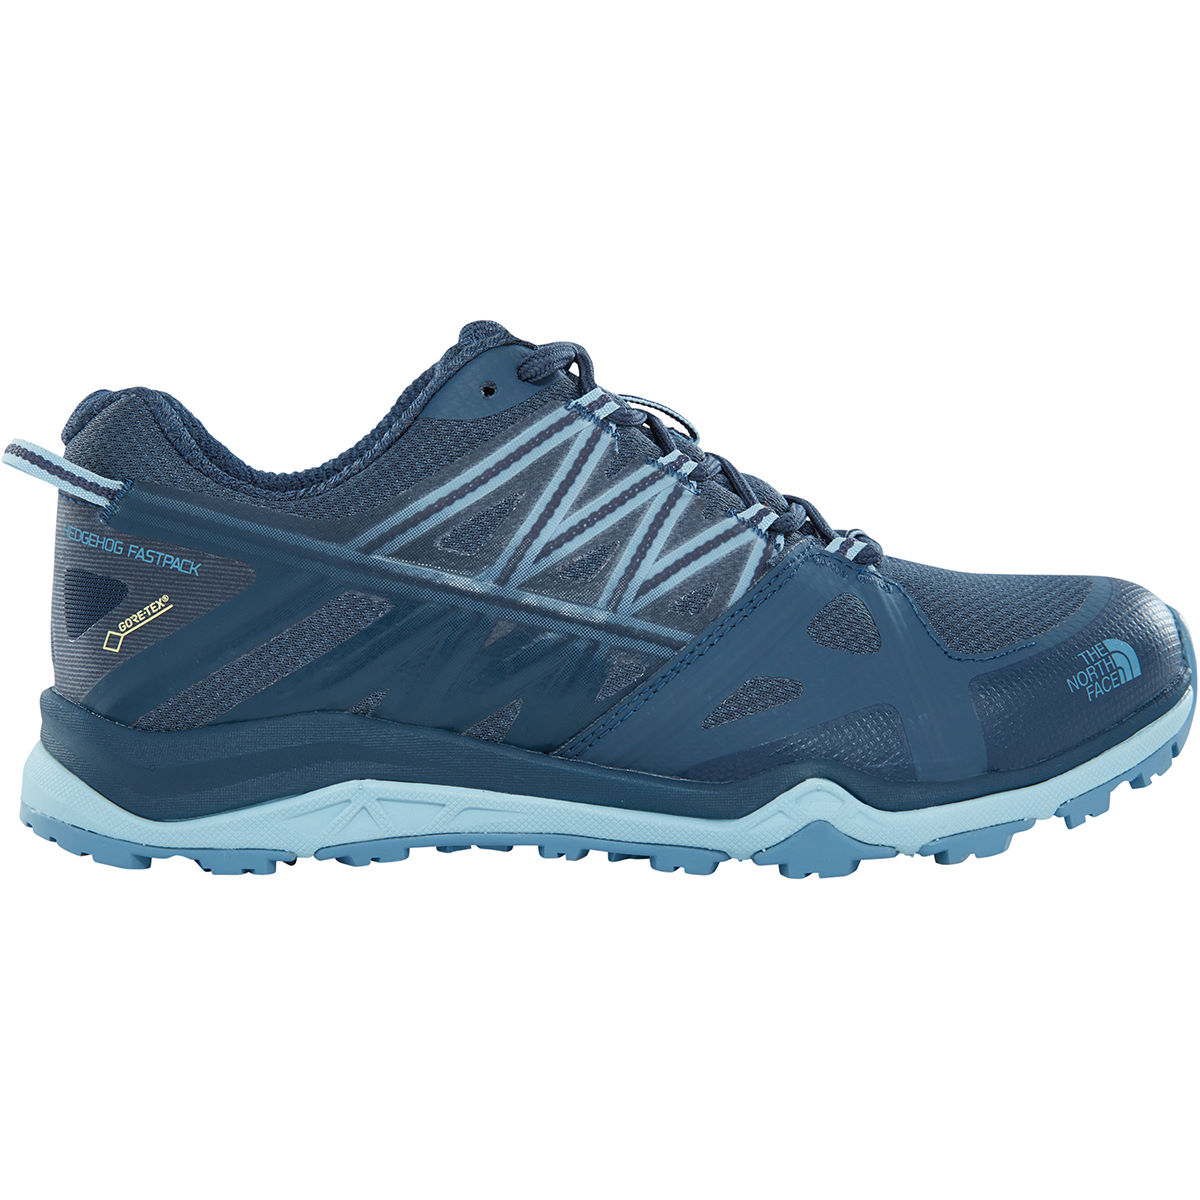 Chaussures Femme The North Face Hedgehog Fastpack Lite II GORE-TEX®